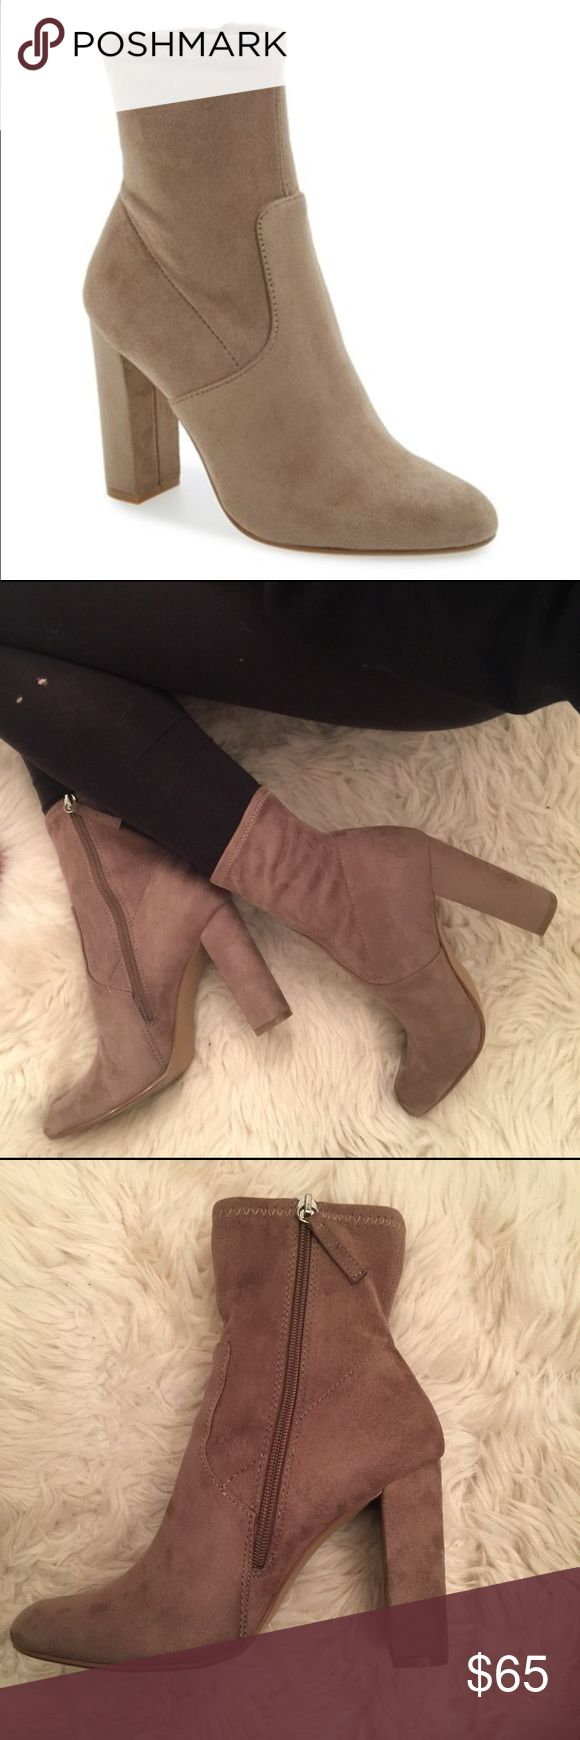 Steve Madden nude sock booties Steve Madden nude suede material sock booties, zipper on inside, really cute and go with everything, worn once for a 4 hour shift, bottoms still very clean (see pic) Steve Madden Shoes Ankle Boots & Booties